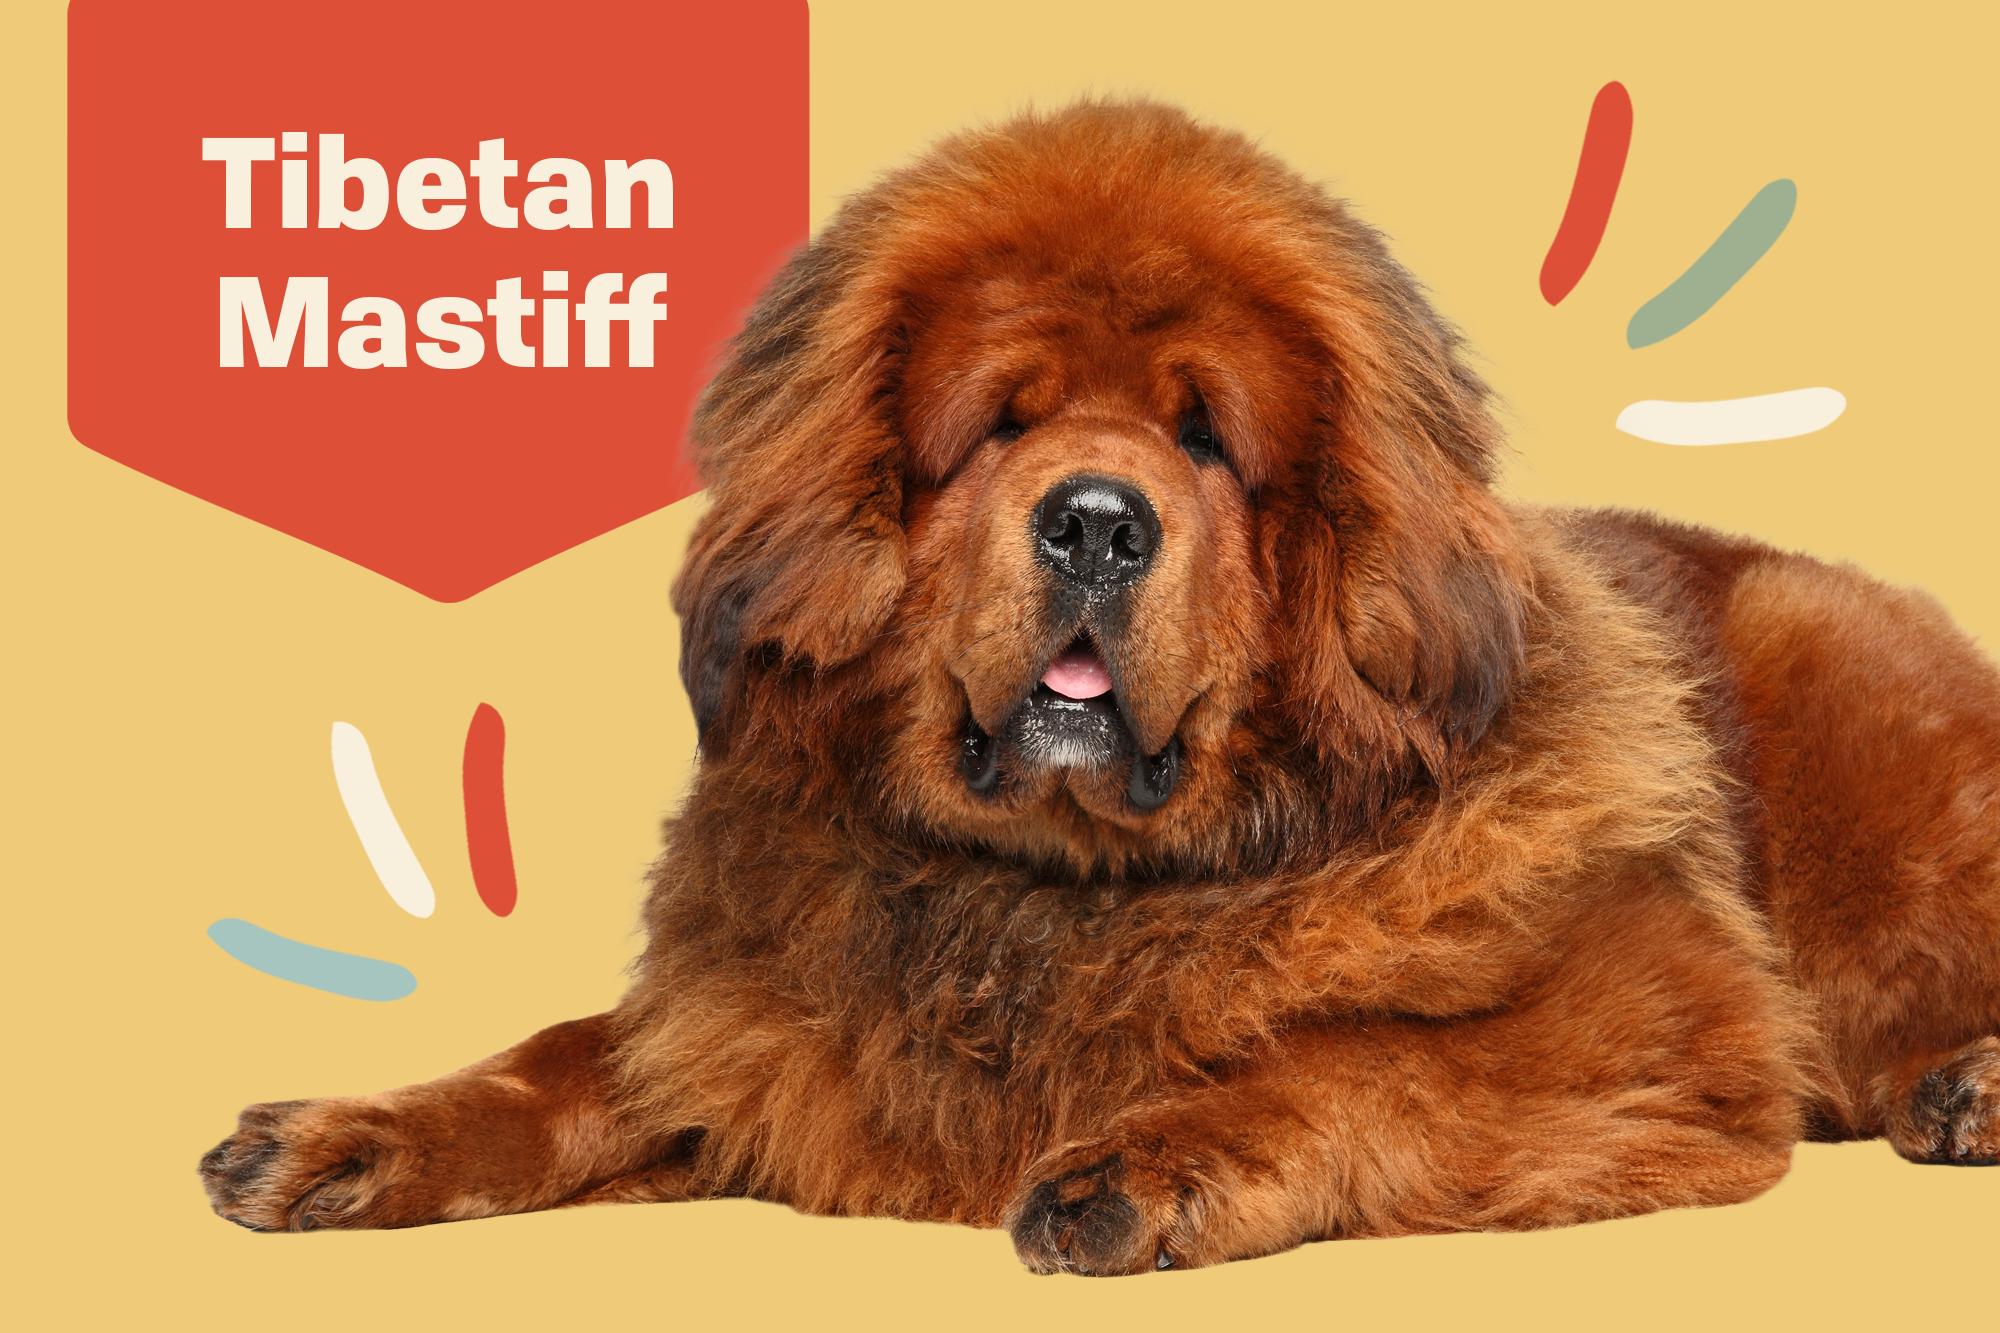 Tibetan Mastiff Breed Photo